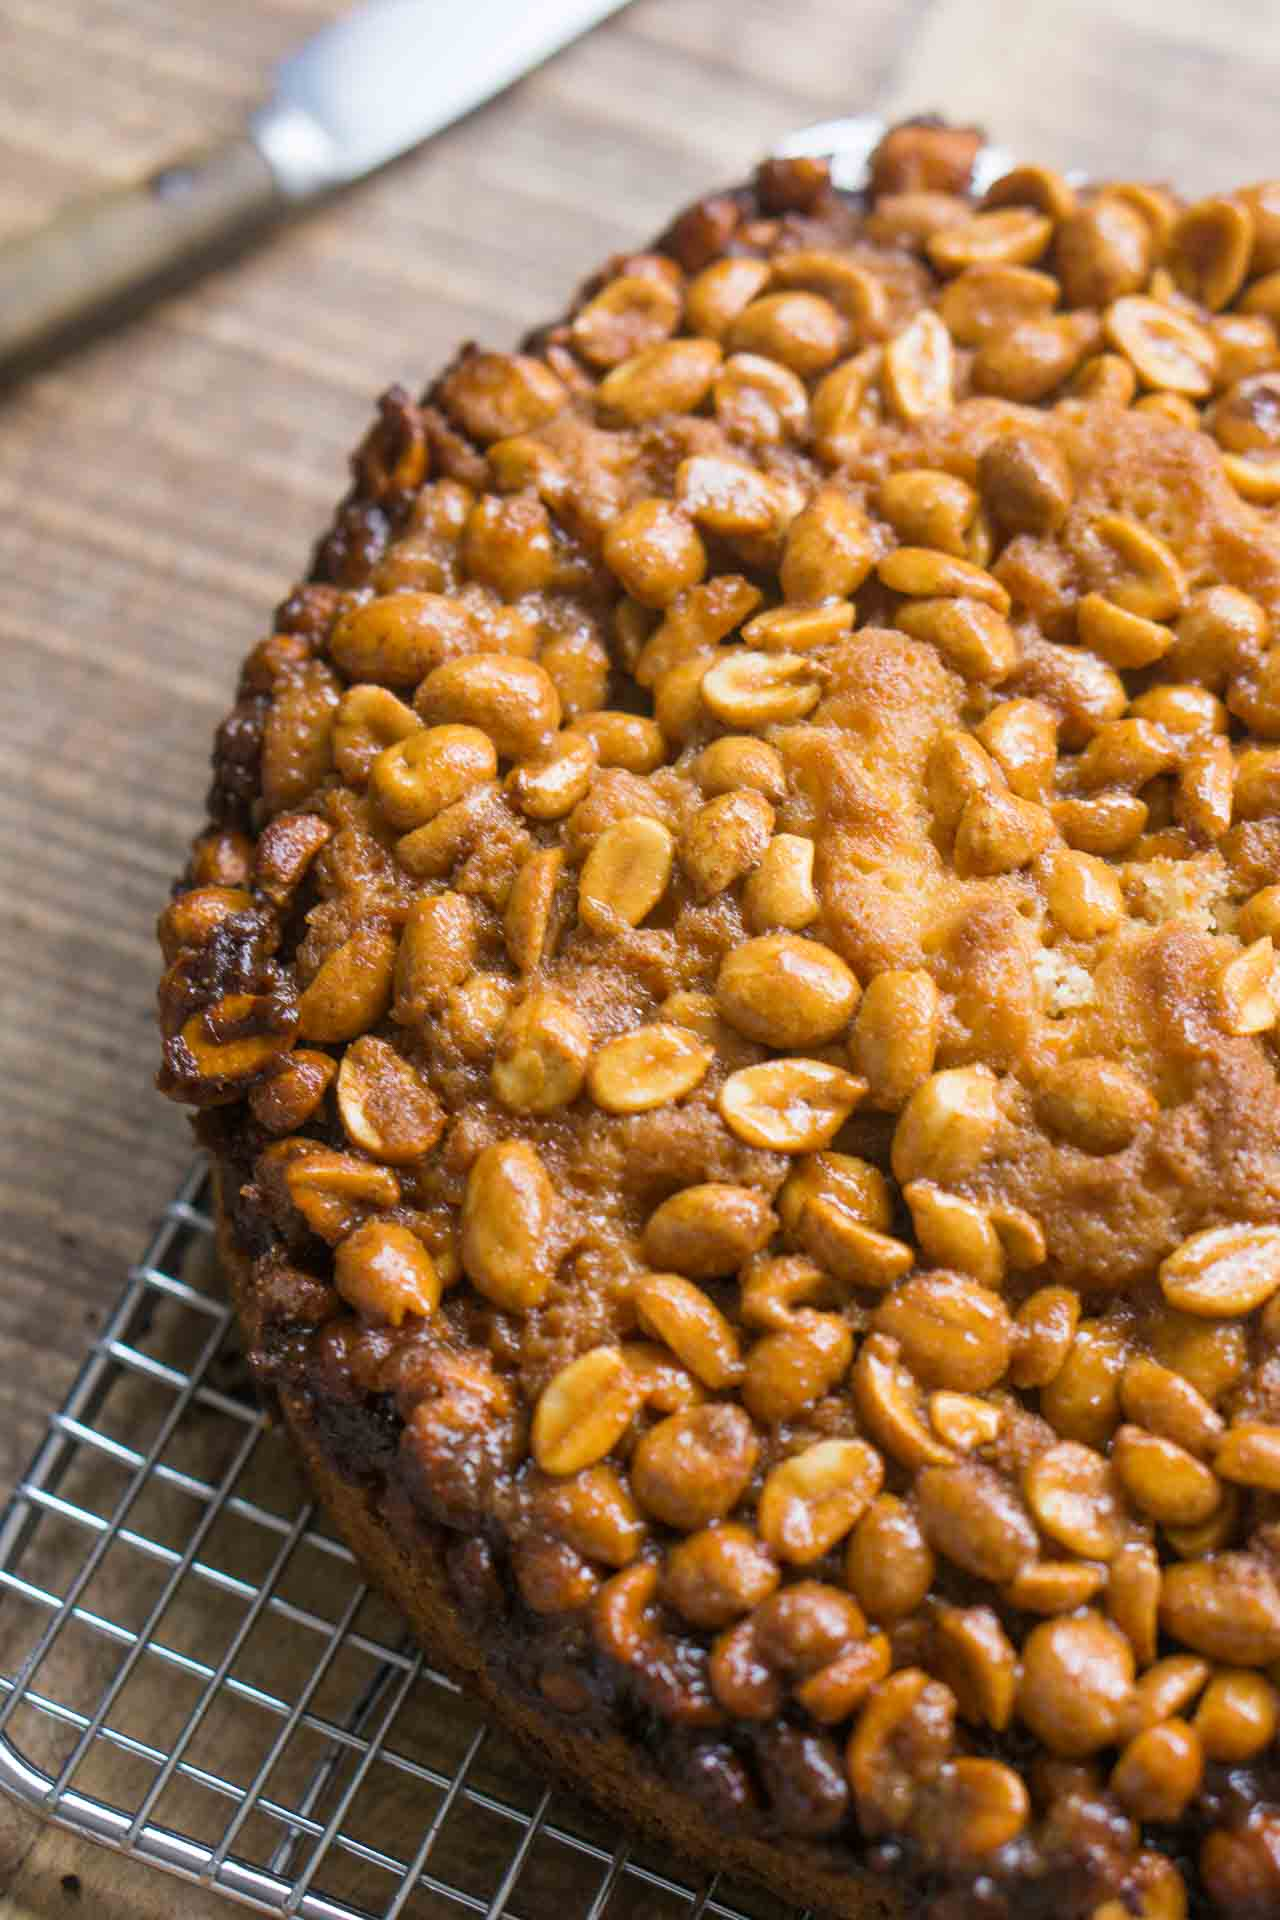 A wonderful cake with a nutty, crispy, caramelized peanut topping!